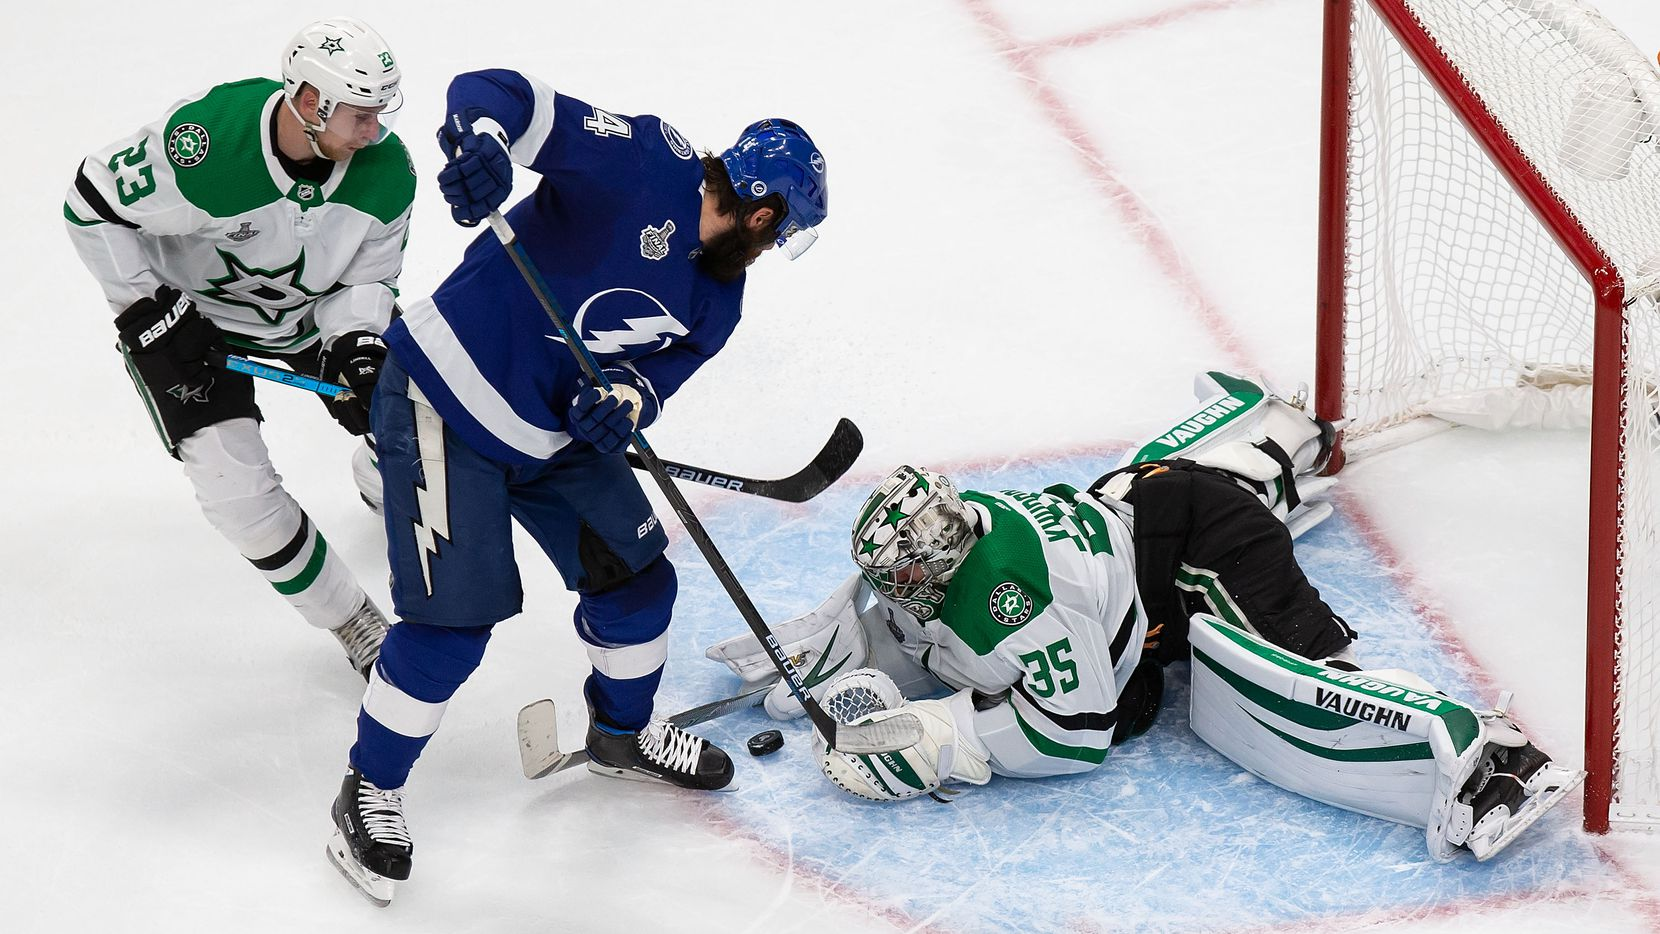 Esa Lindell (23) and goaltender Anton Khudobin (35) of the Dallas Stars defend against Pat Maroon (14) of the Tampa Bay Lightning during Game Two of the Stanley Cup Final at Rogers Place in Edmonton, Alberta, Canada on Monday, September 21, 2020.